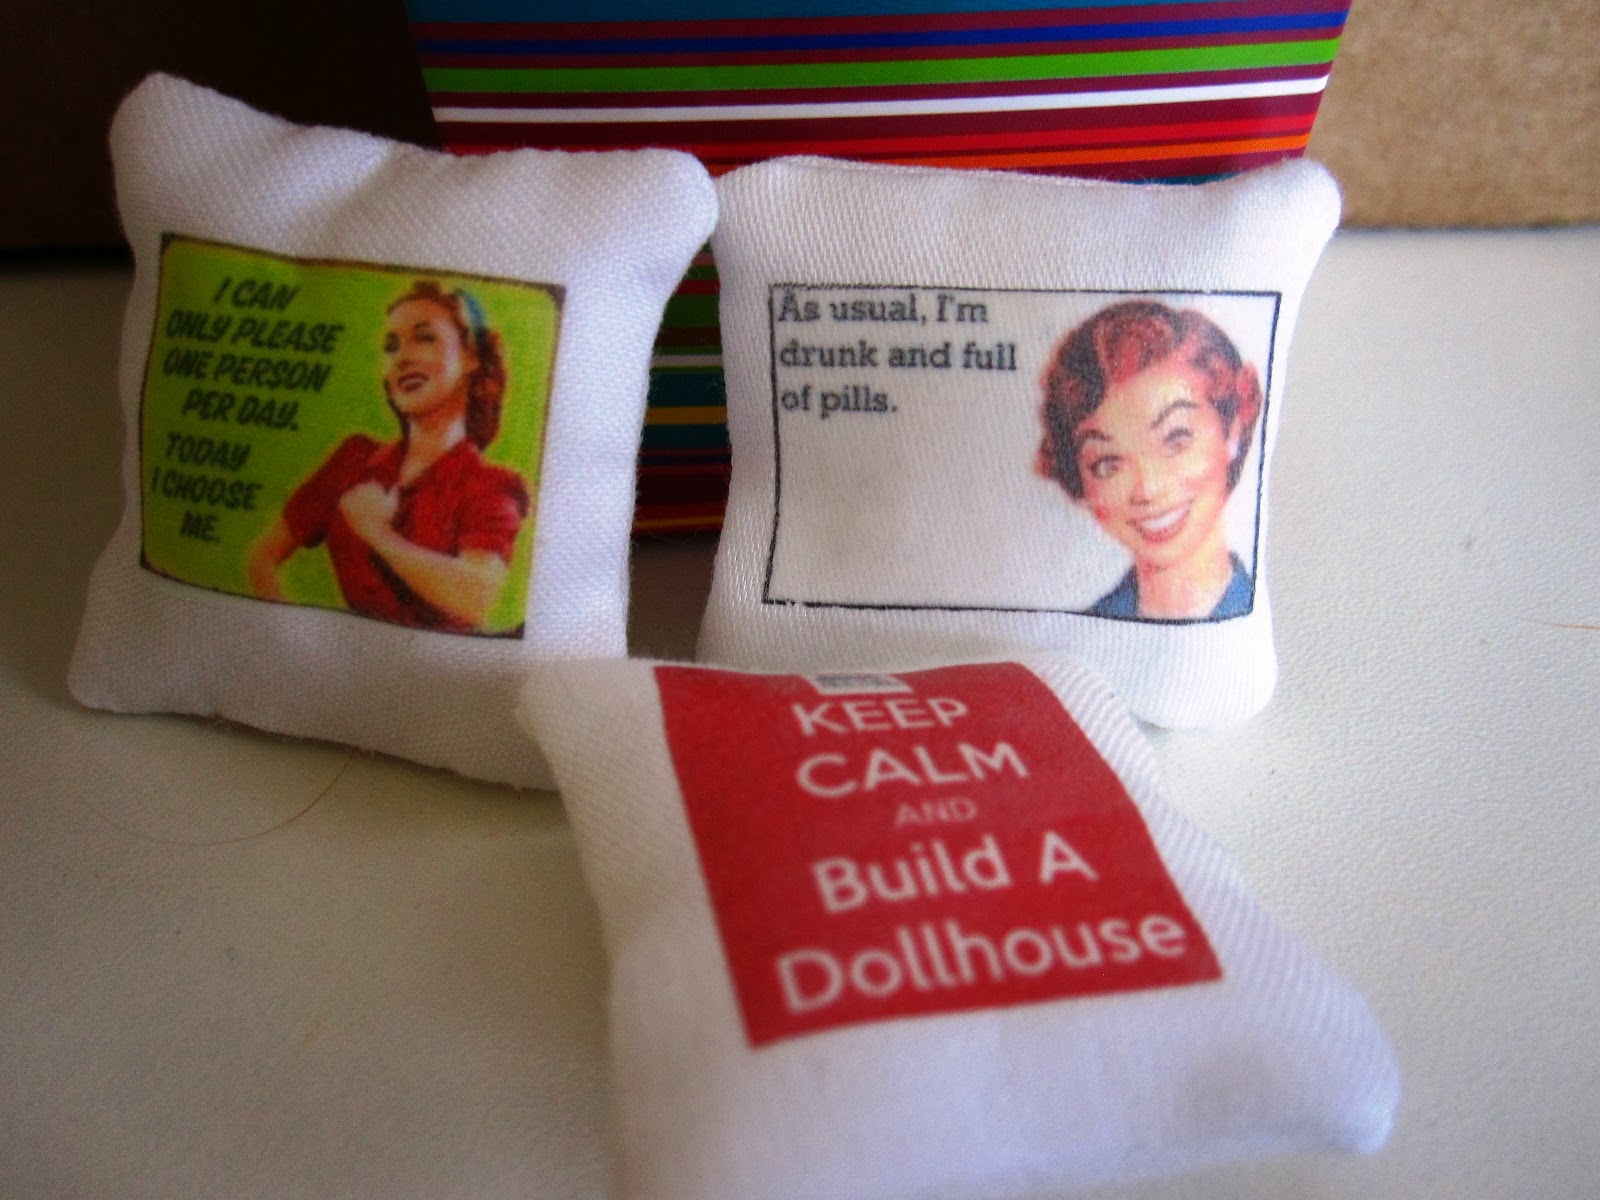 Three modern miniature cushions with funny slogans on them